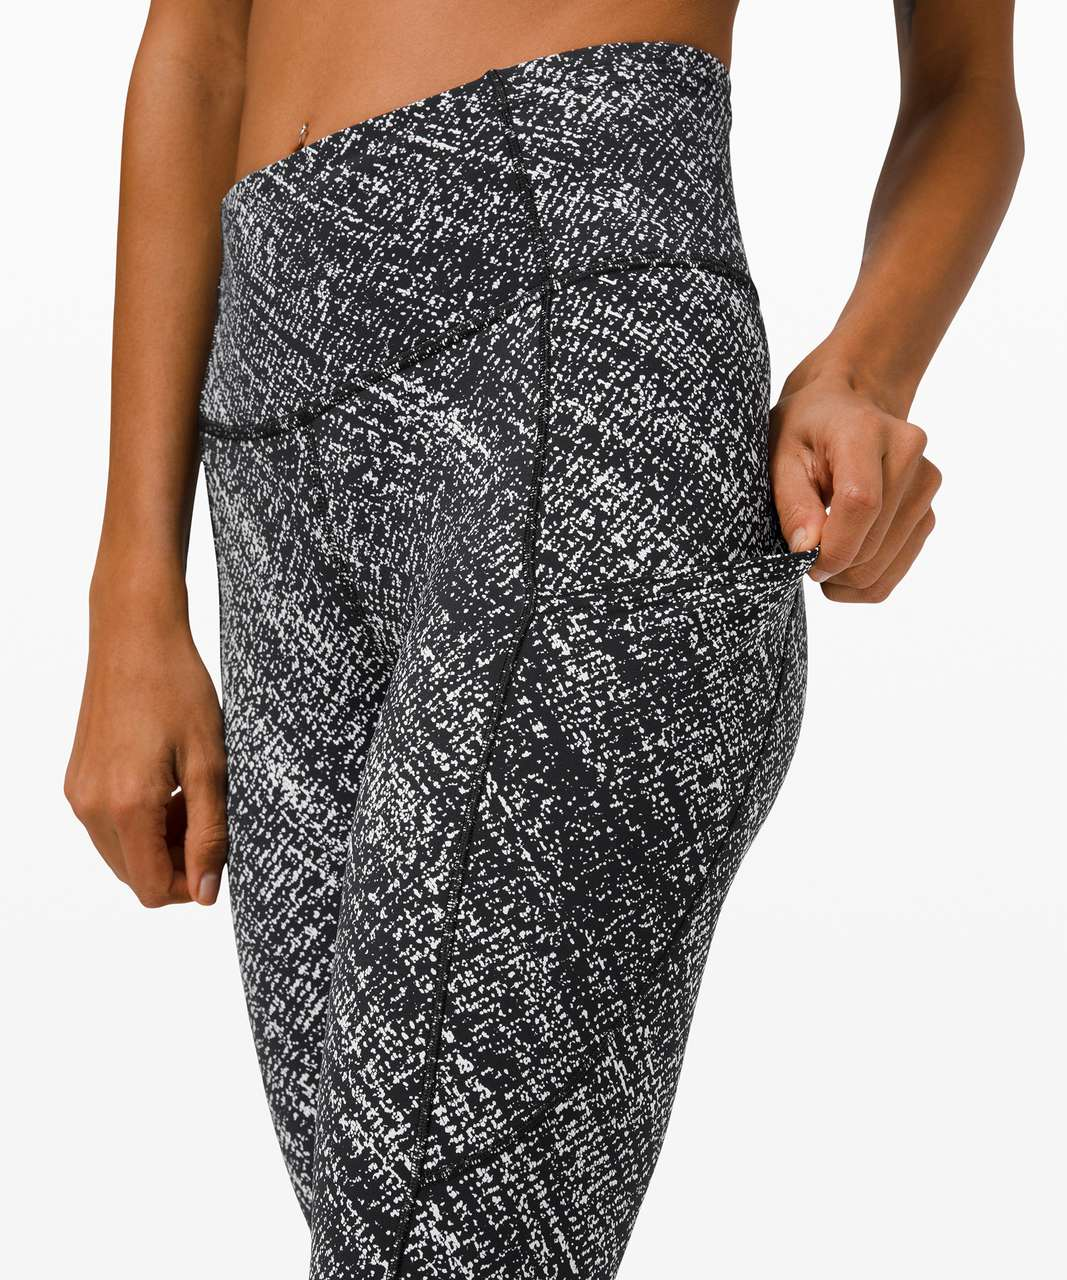 """Lululemon Fast and Free High-Rise Crop 23"""" *Non-Reflective - Speckle Sprint Alpine White Black"""